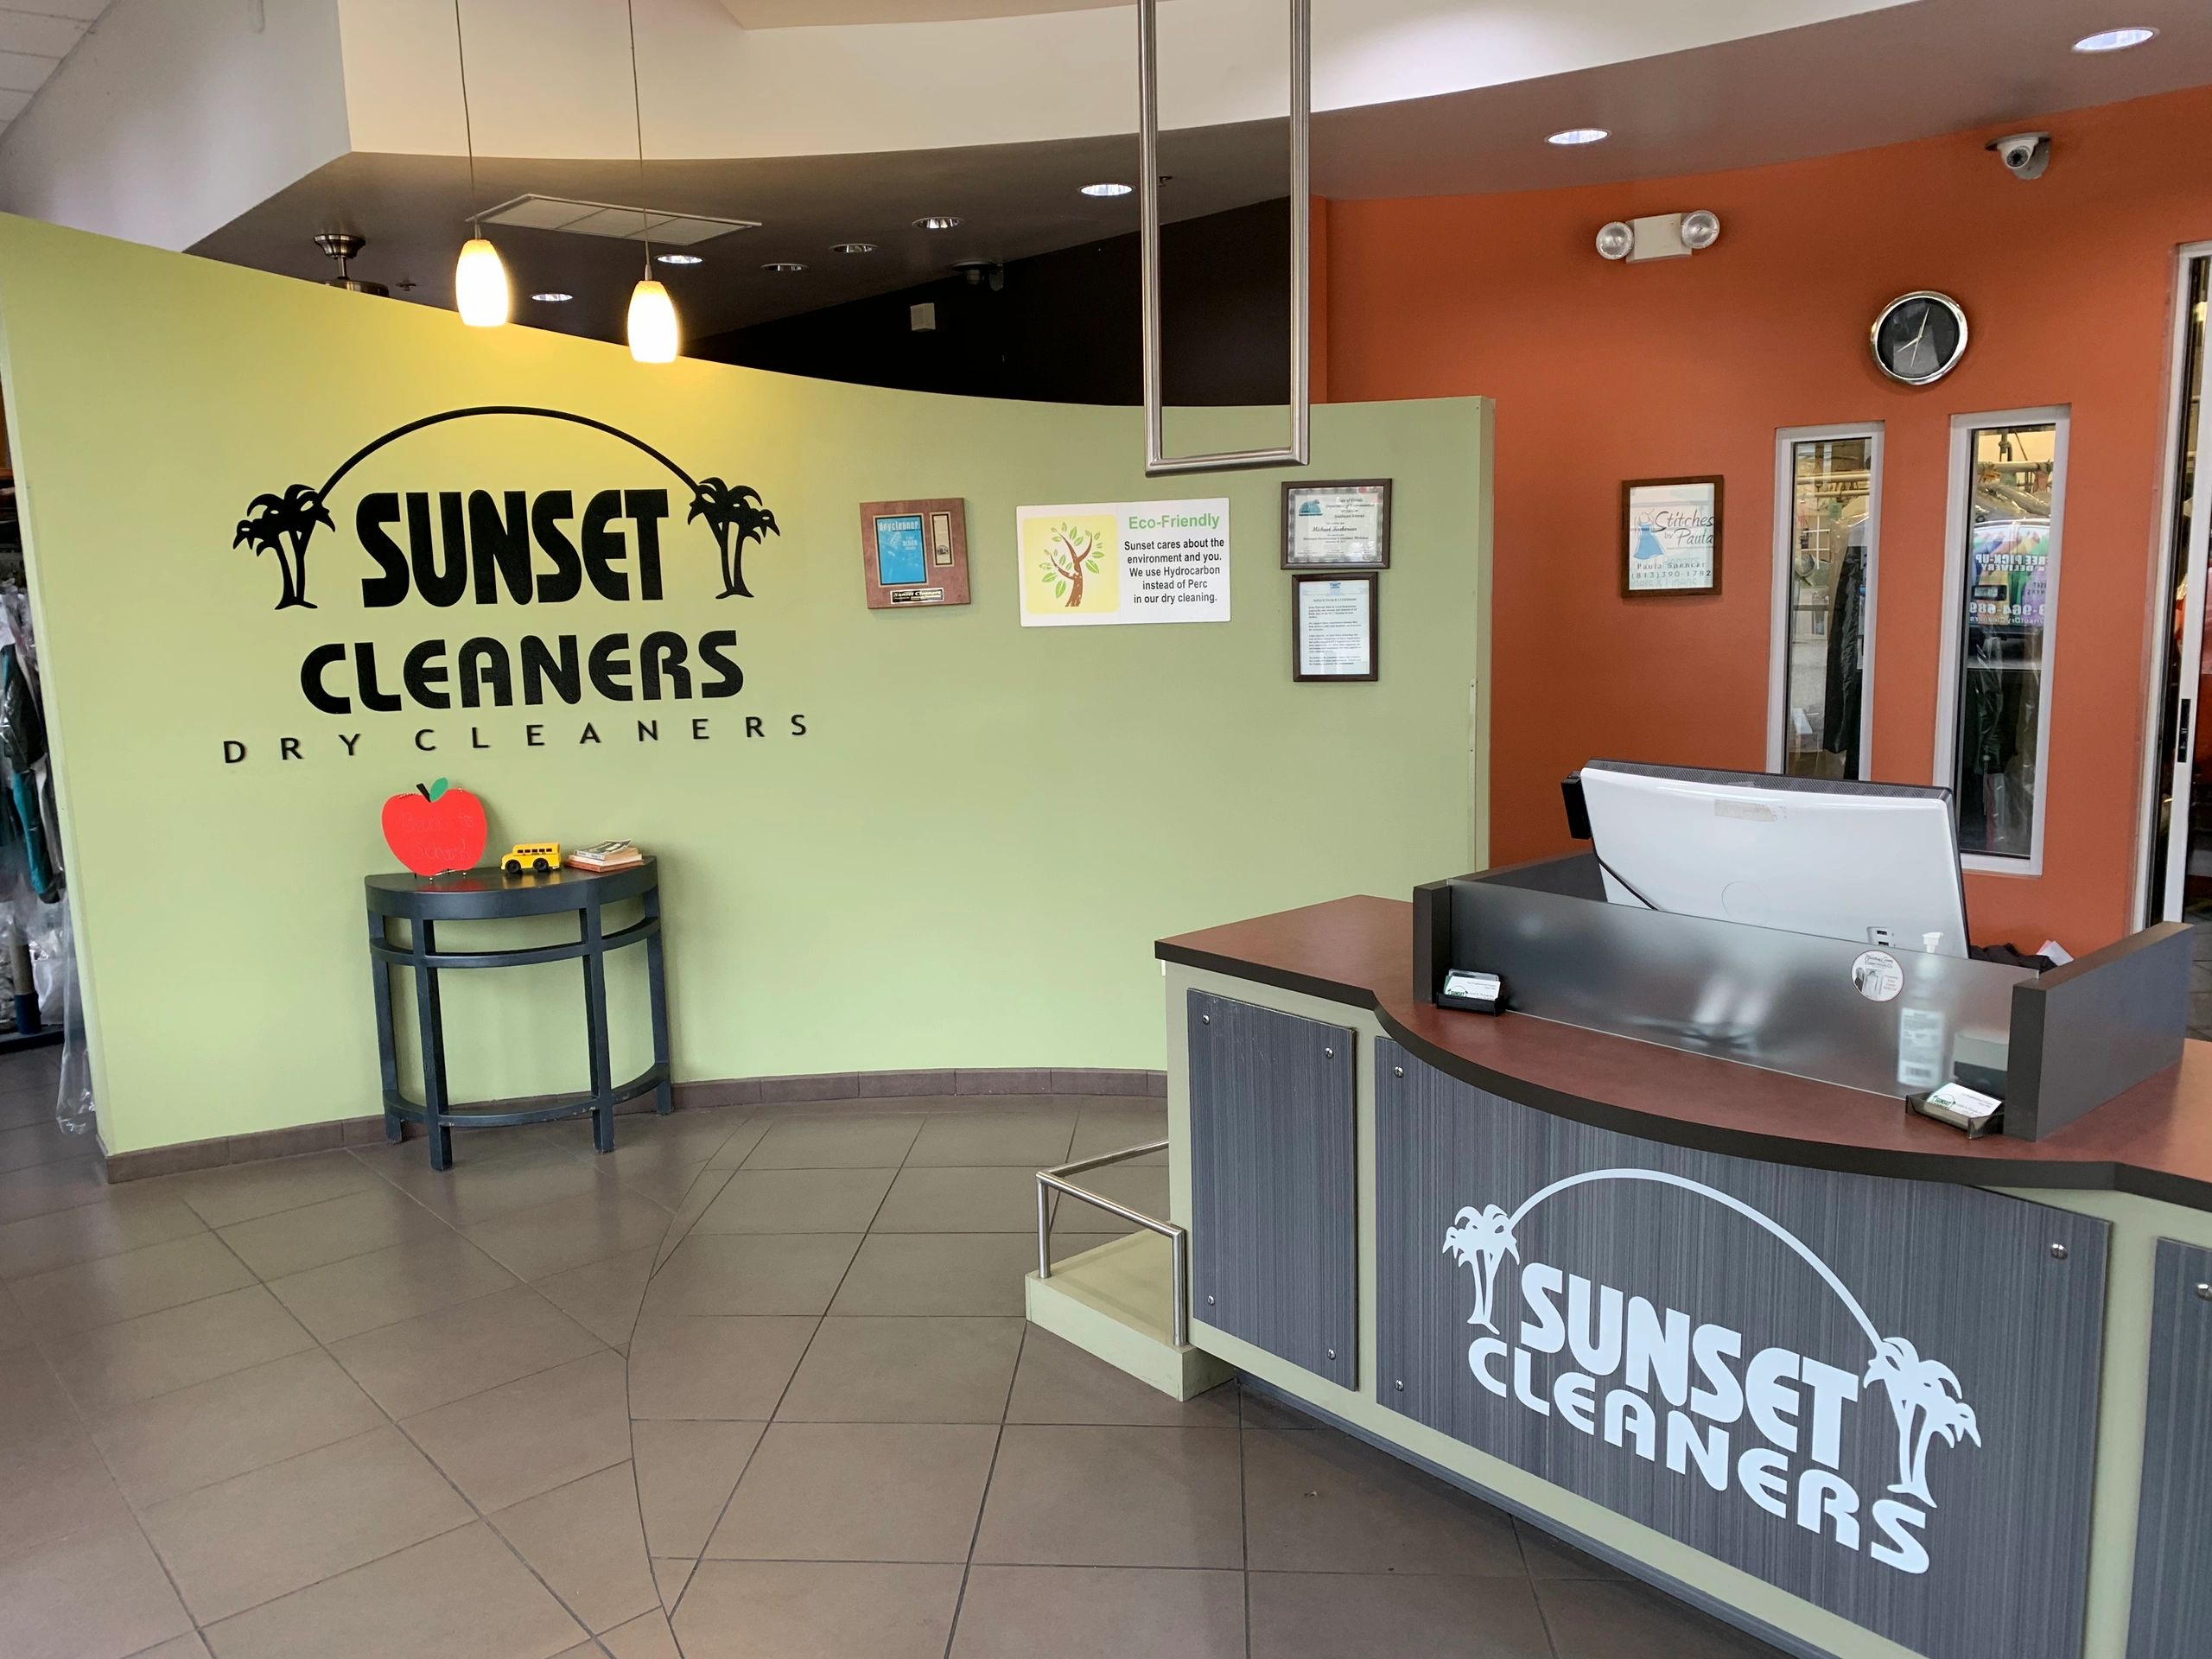 Terrific Sunset Cleaners Dry Cleaners Lutz Florida Interior Design Ideas Tzicisoteloinfo